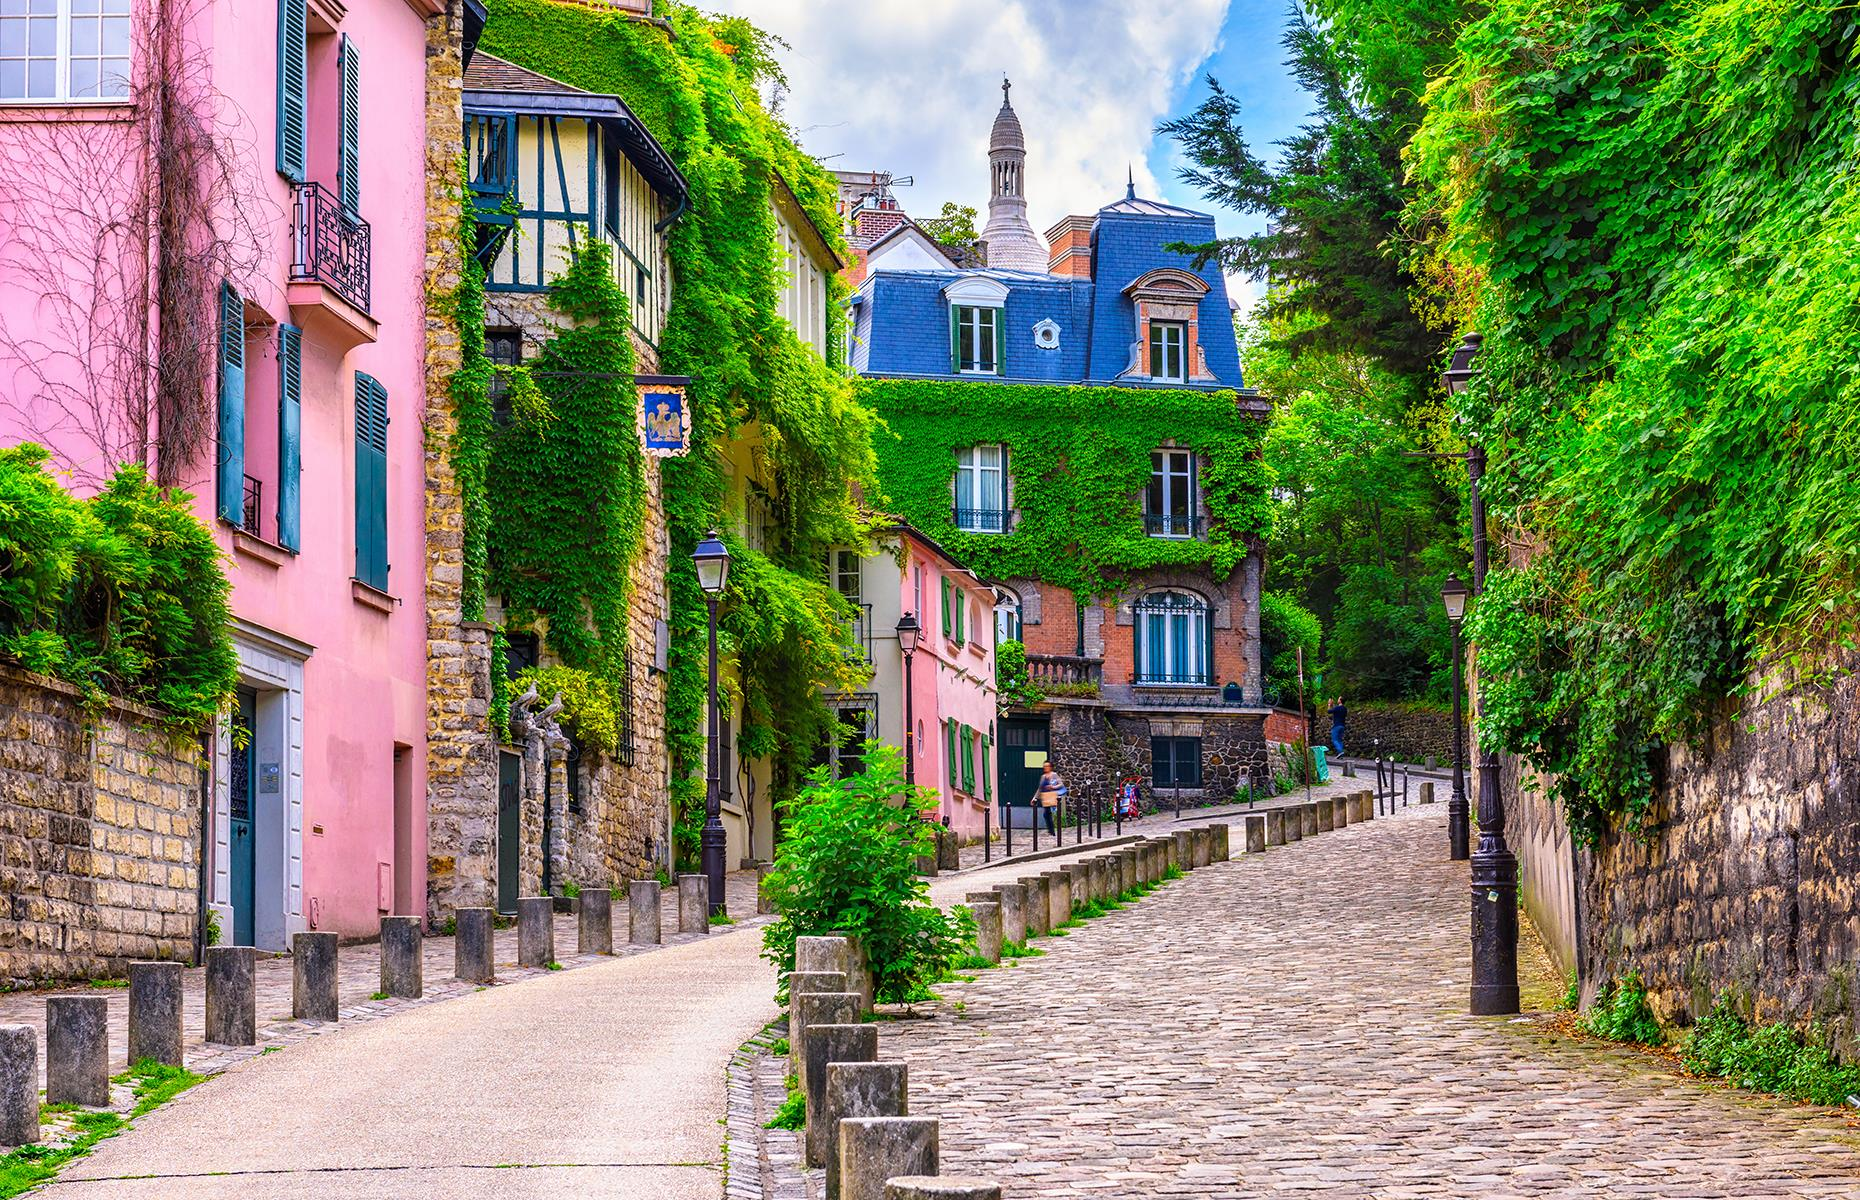 Slide 3 of 31: The French capital might be famous for sites like the Eiffel Tower and the Arc de Triomphe, but there's a lot more to the city and its distinctive arrondissements (administrative districts). From the ancient, narrow lanes of Marais to the charm of Montmartre's cobbled streets (pictured), Paris has many faces to it that are equally striking in every season.